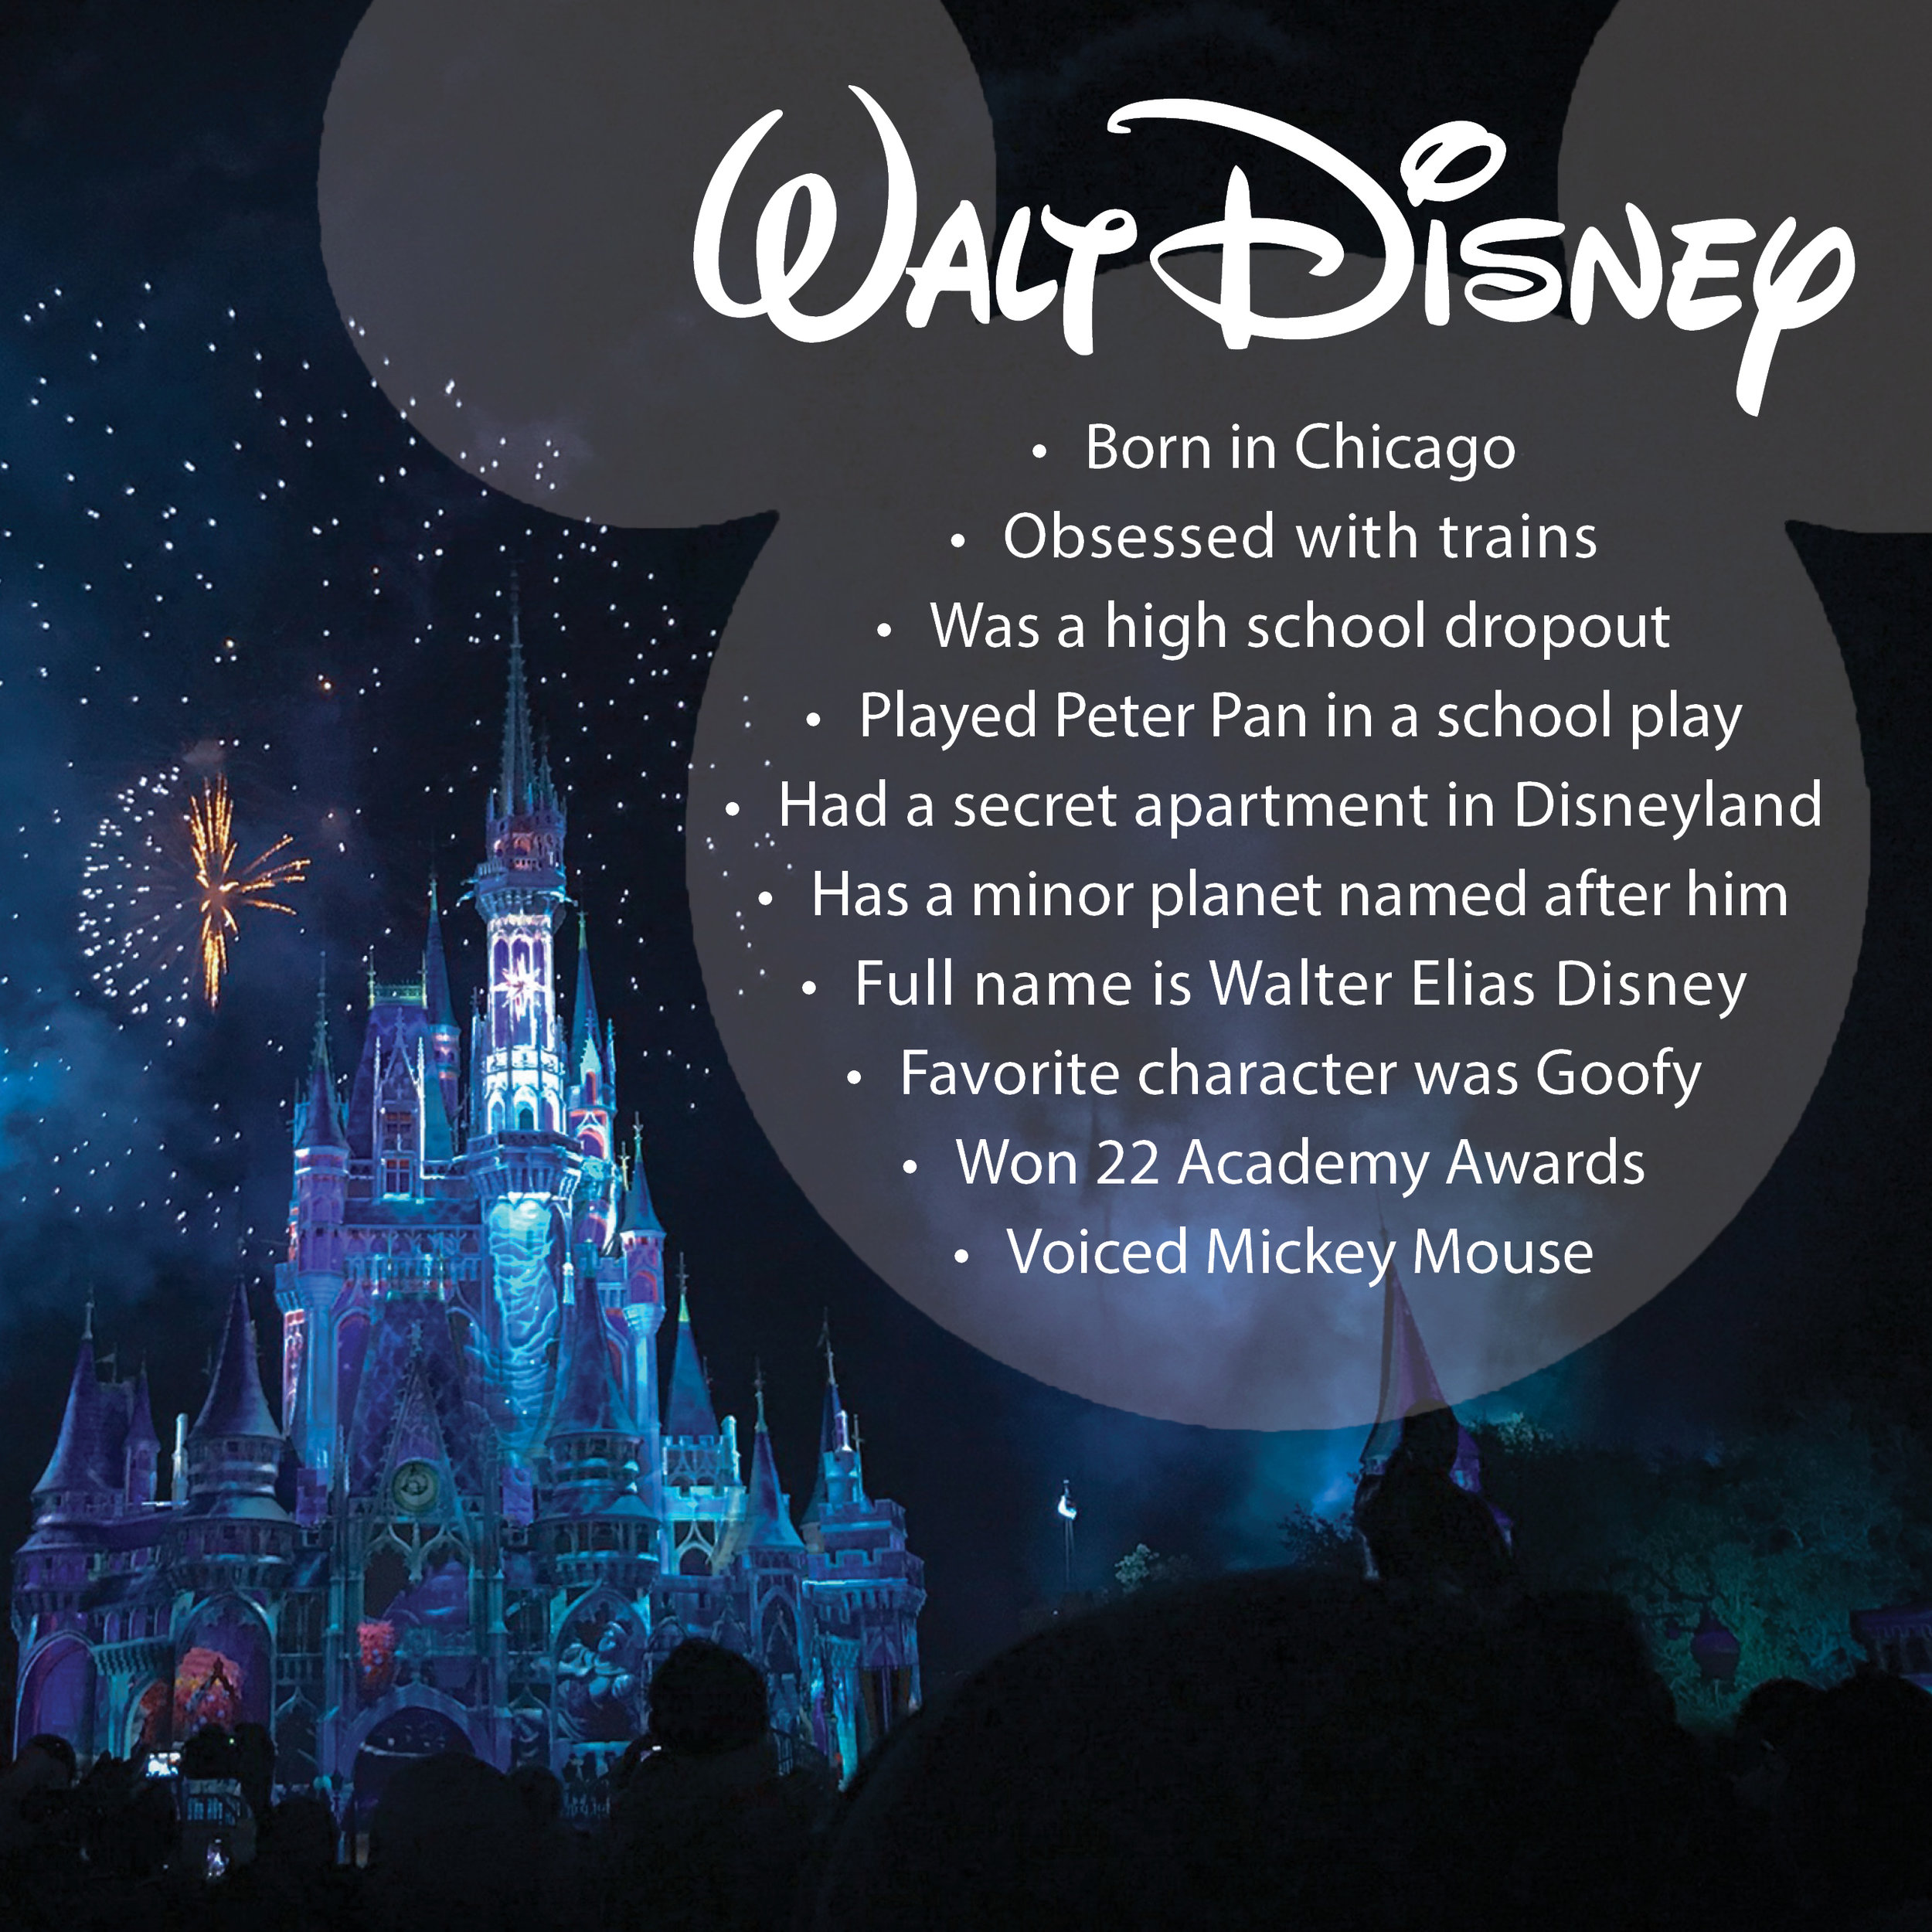 Facts about the wonderful Walt Disney.